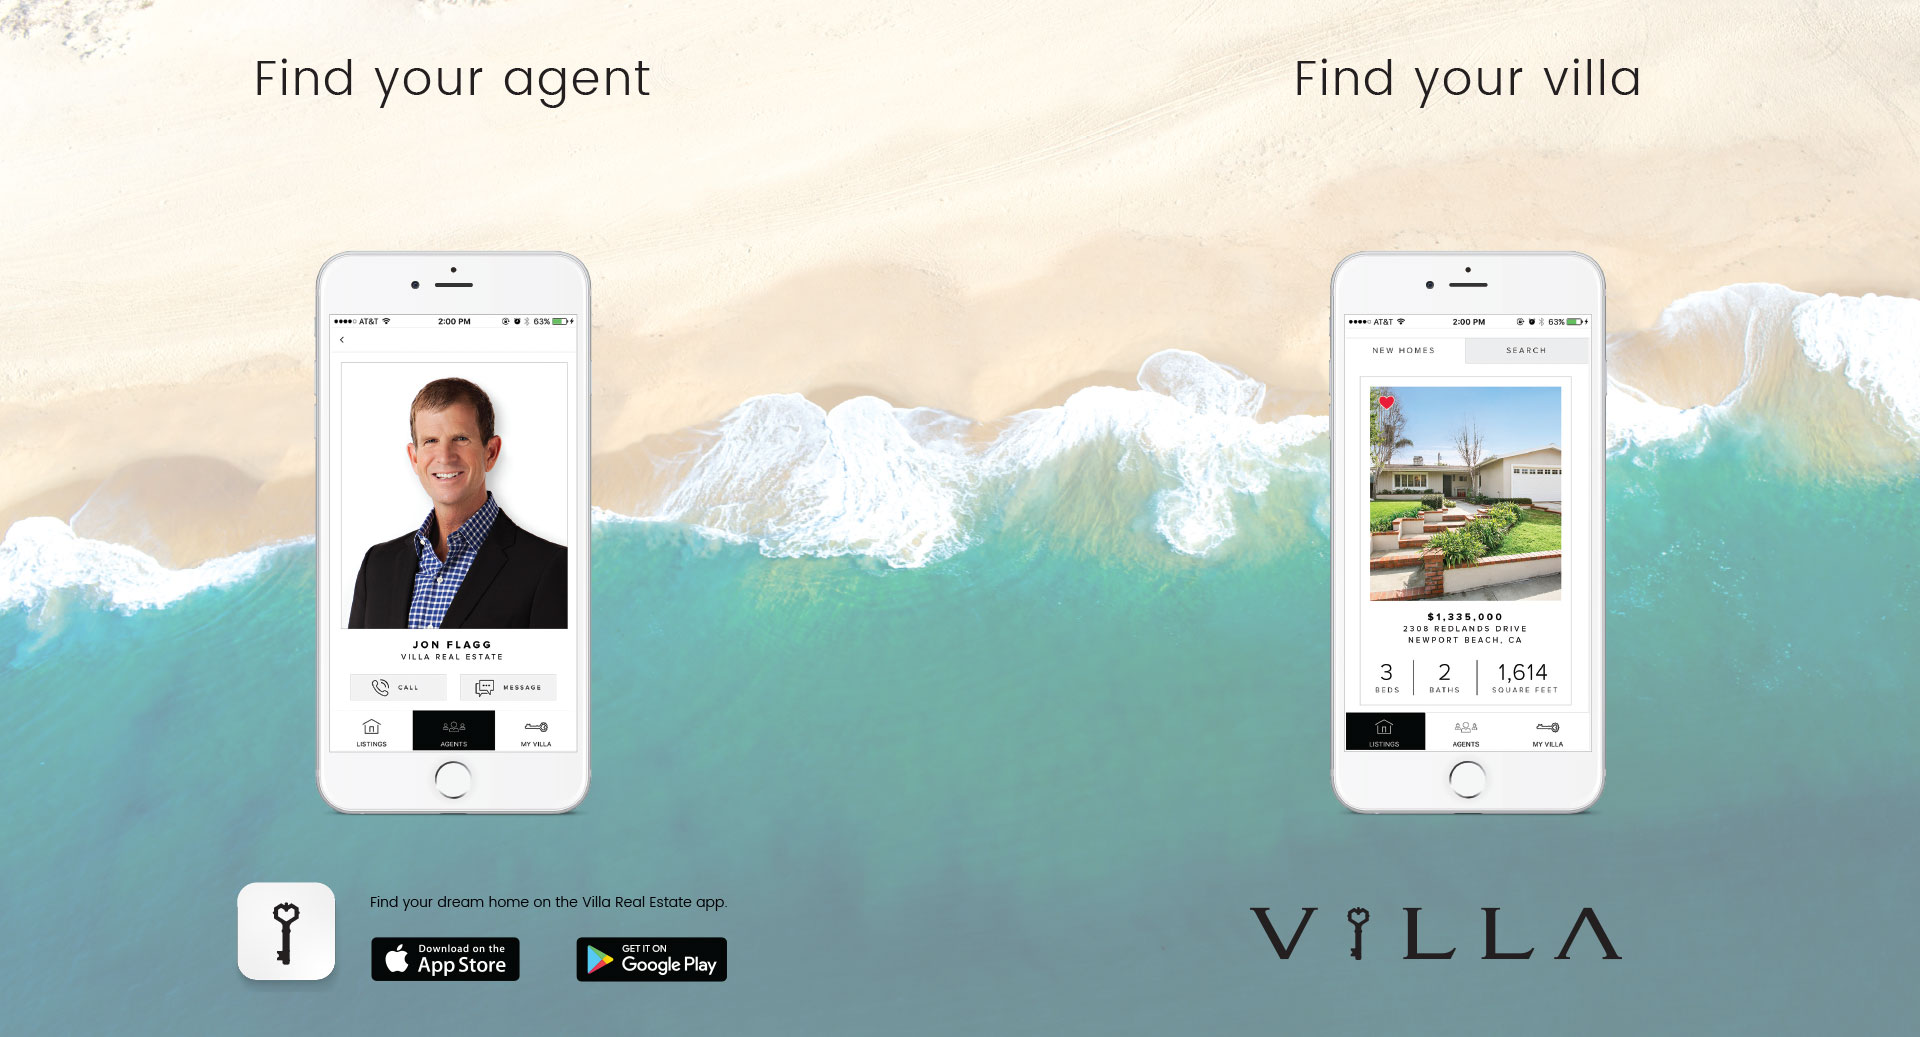 Announcing The Villa Real Estate App